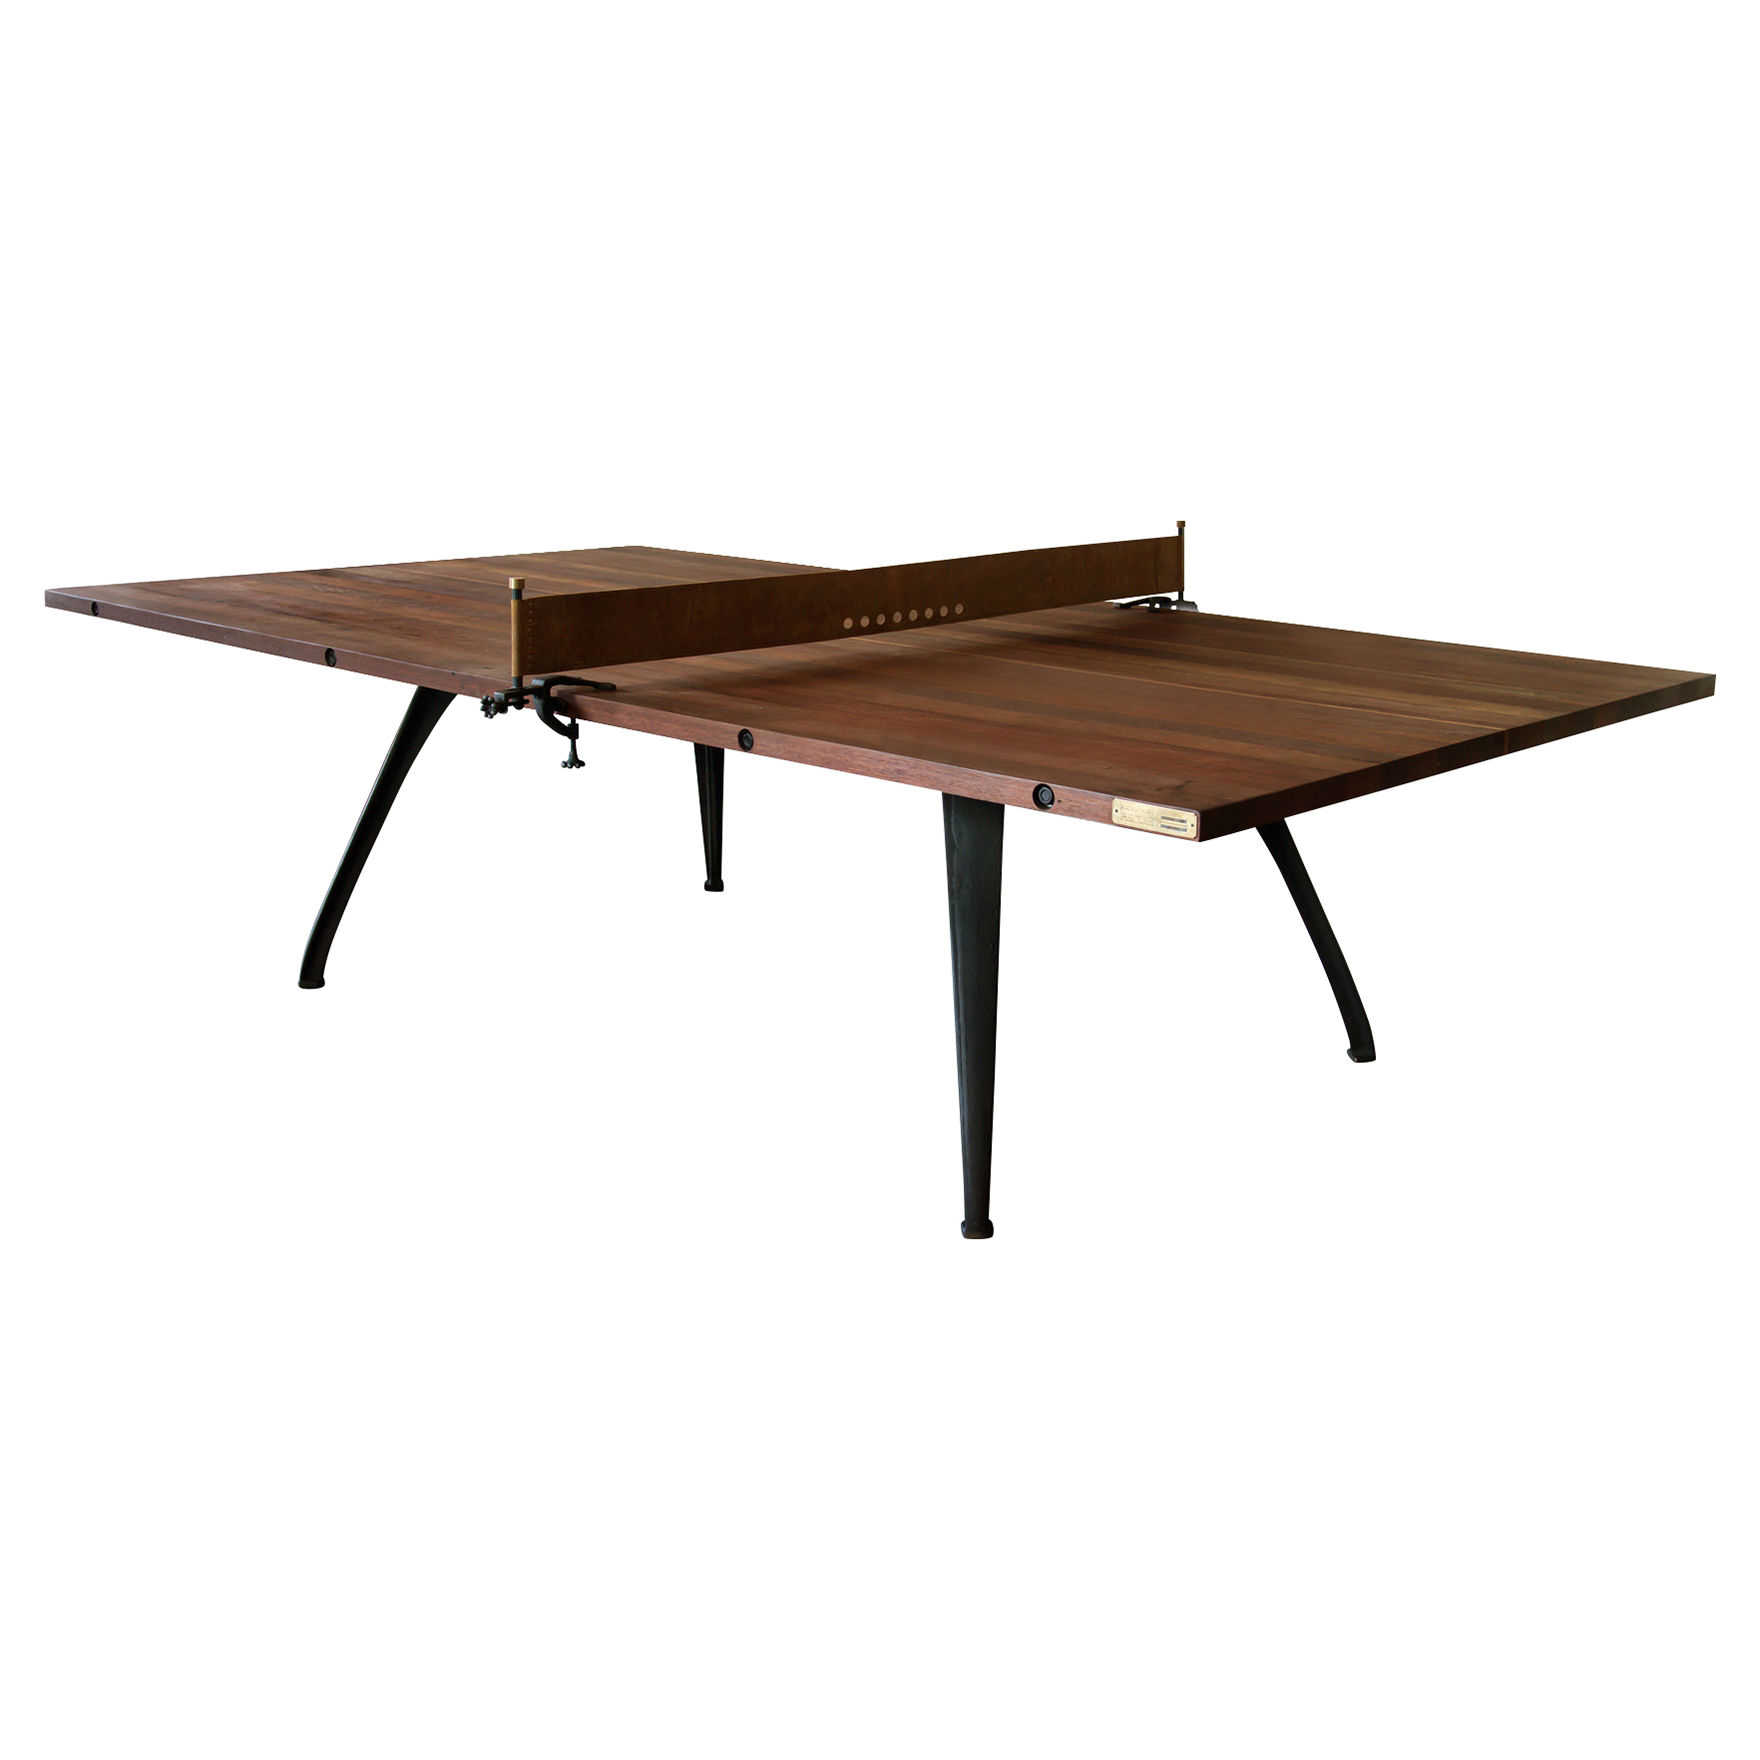 Superieur Palazzo Industrial Loft Wood Metal Ping Pong Table